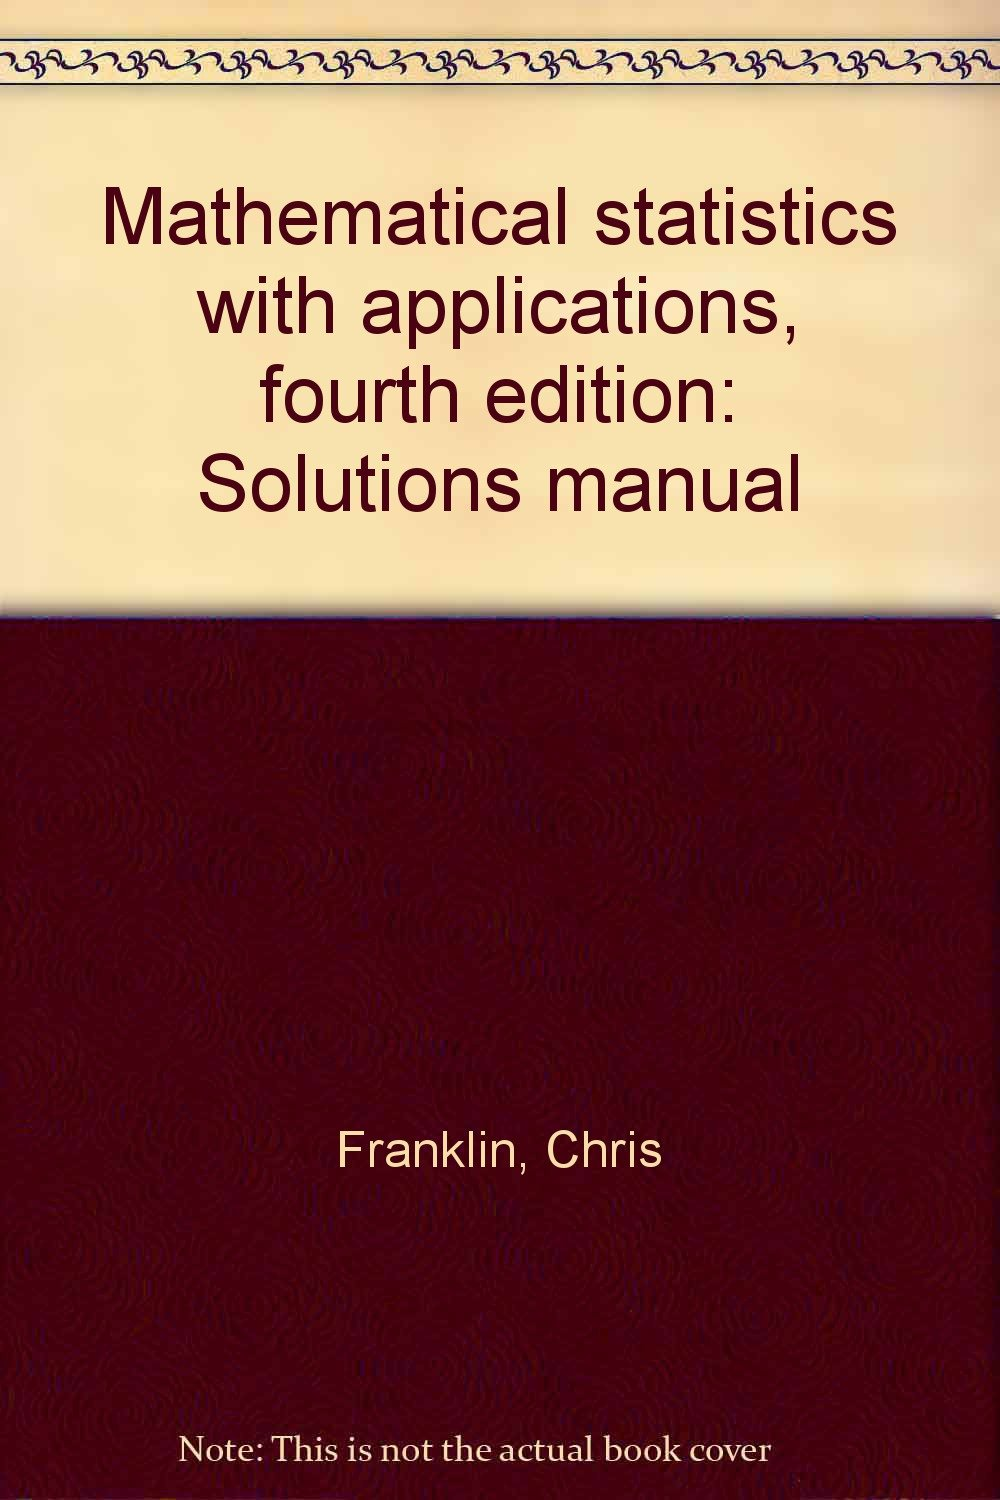 Mathematical statistics with applications, fourth edition: Solutions manual:  9780534920272: Books - Amazon.ca